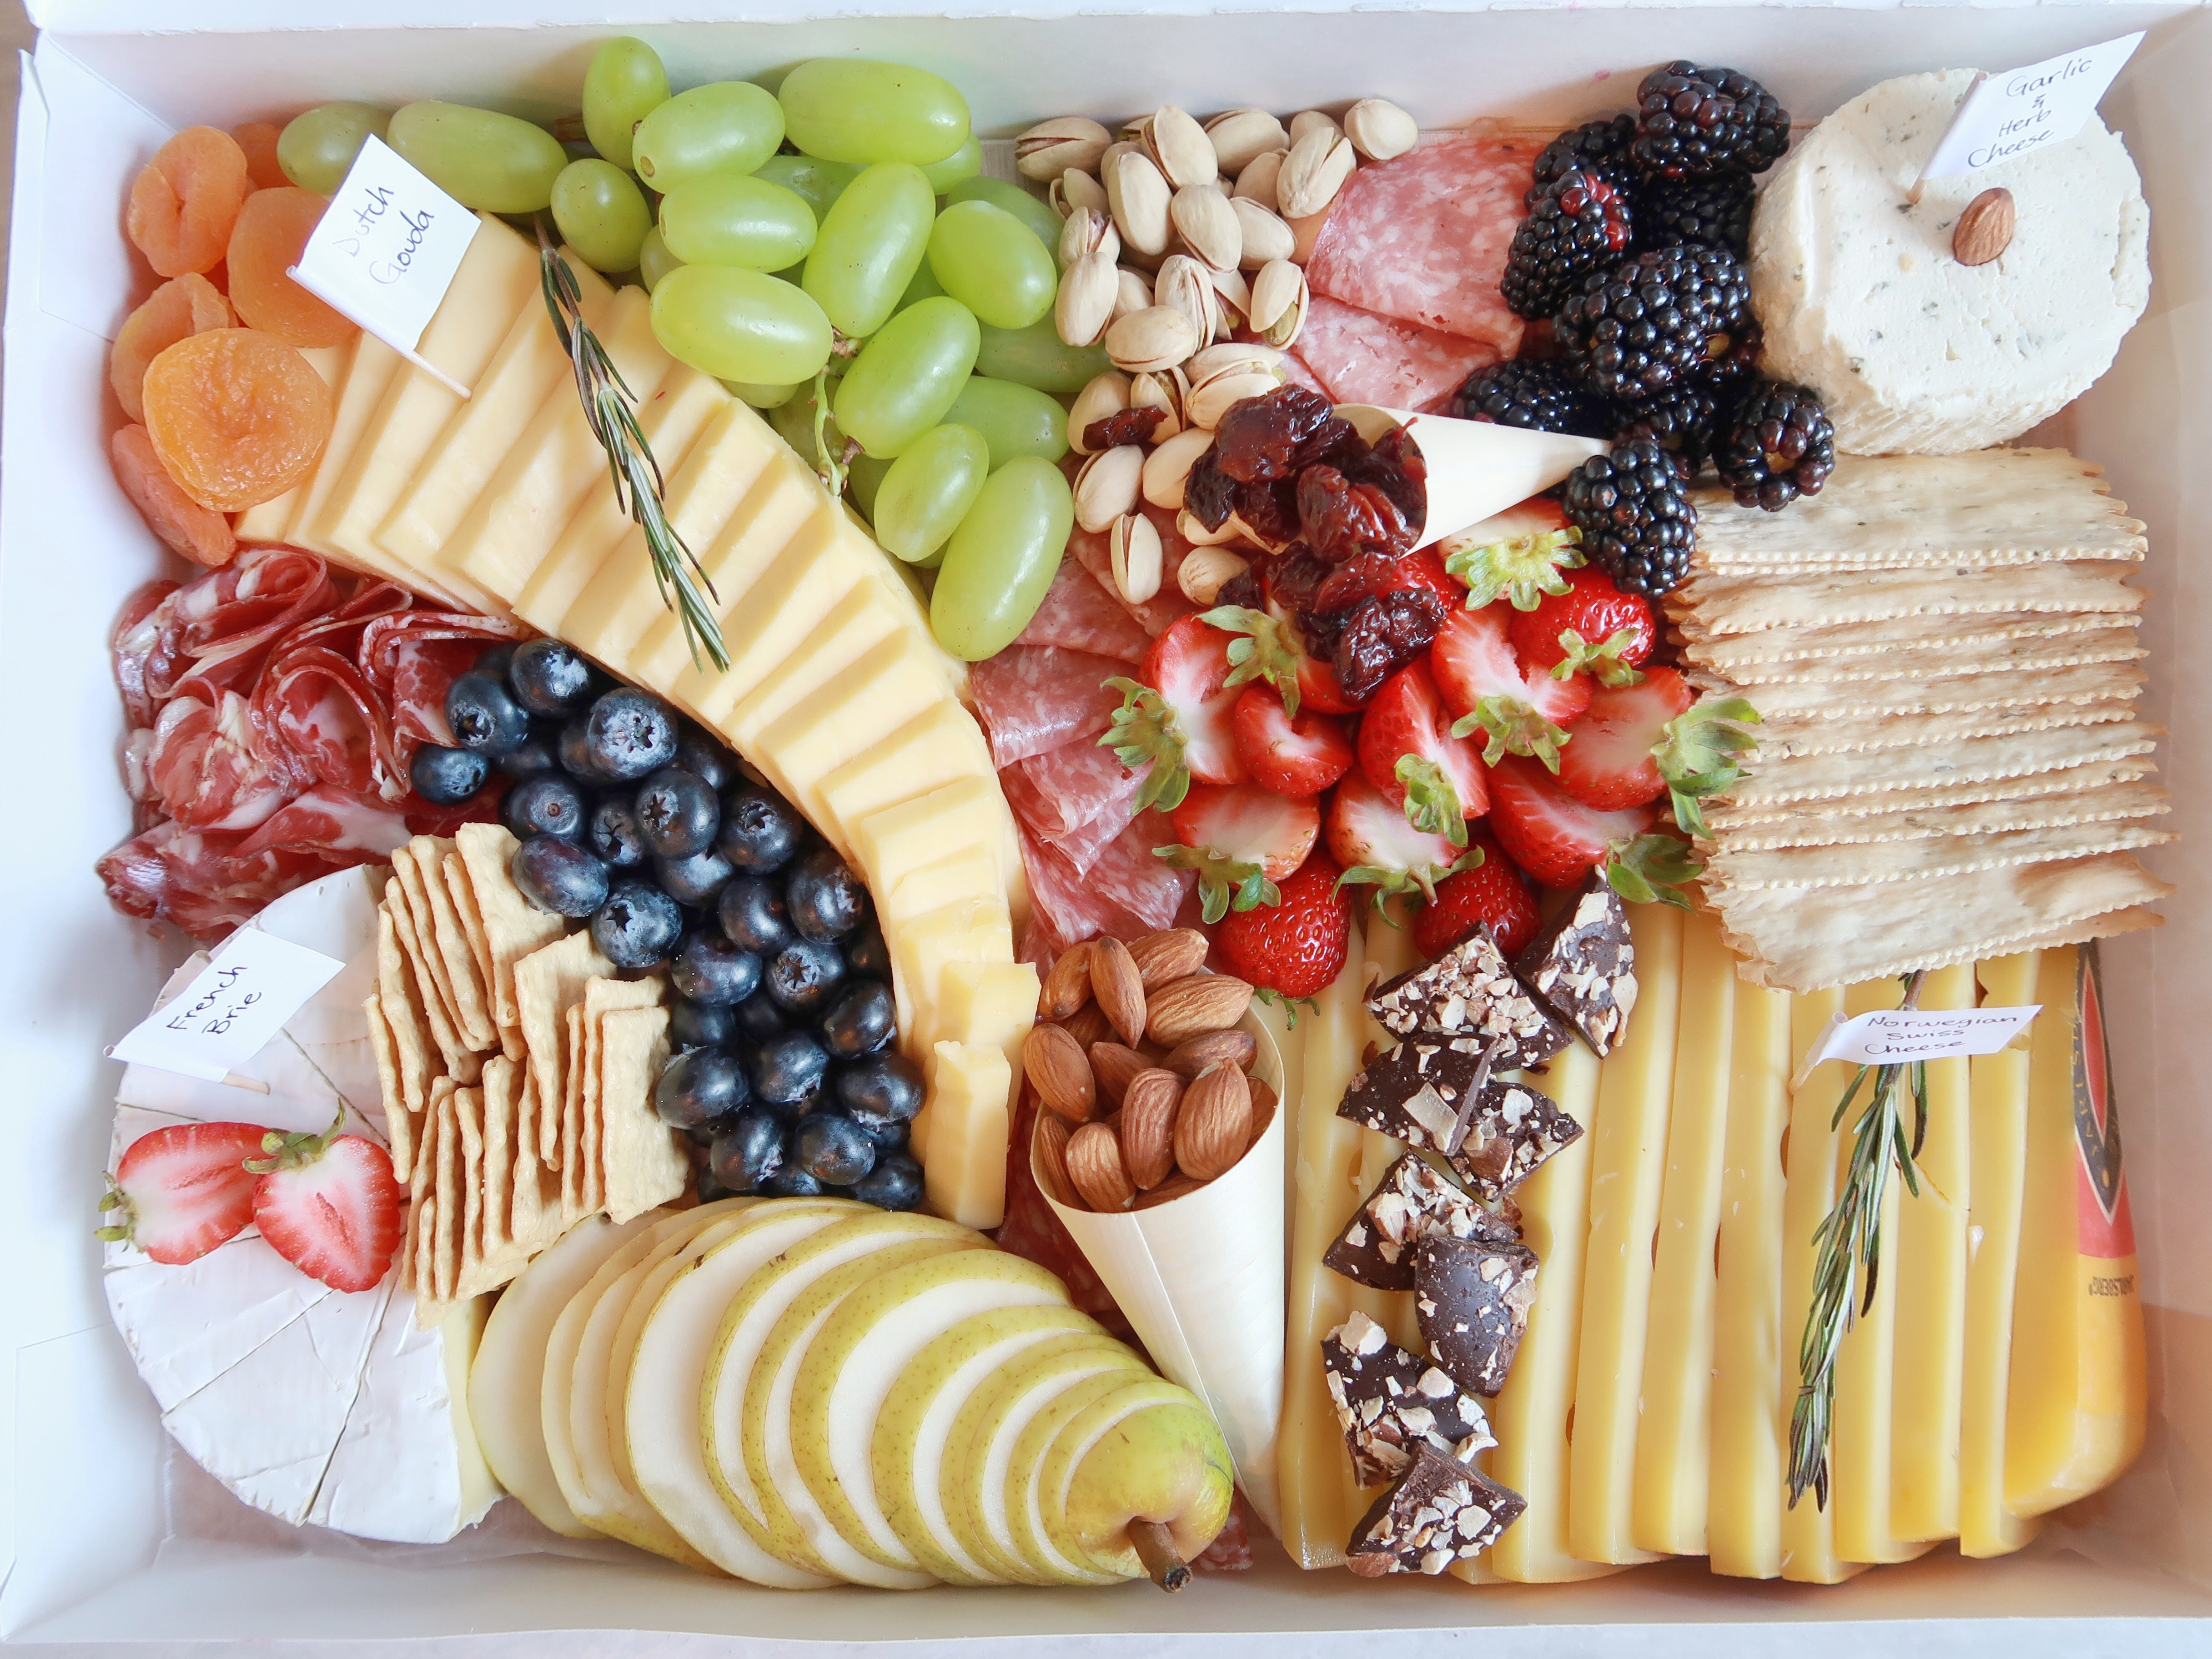 Medium Cheeseboard For 10-15 People